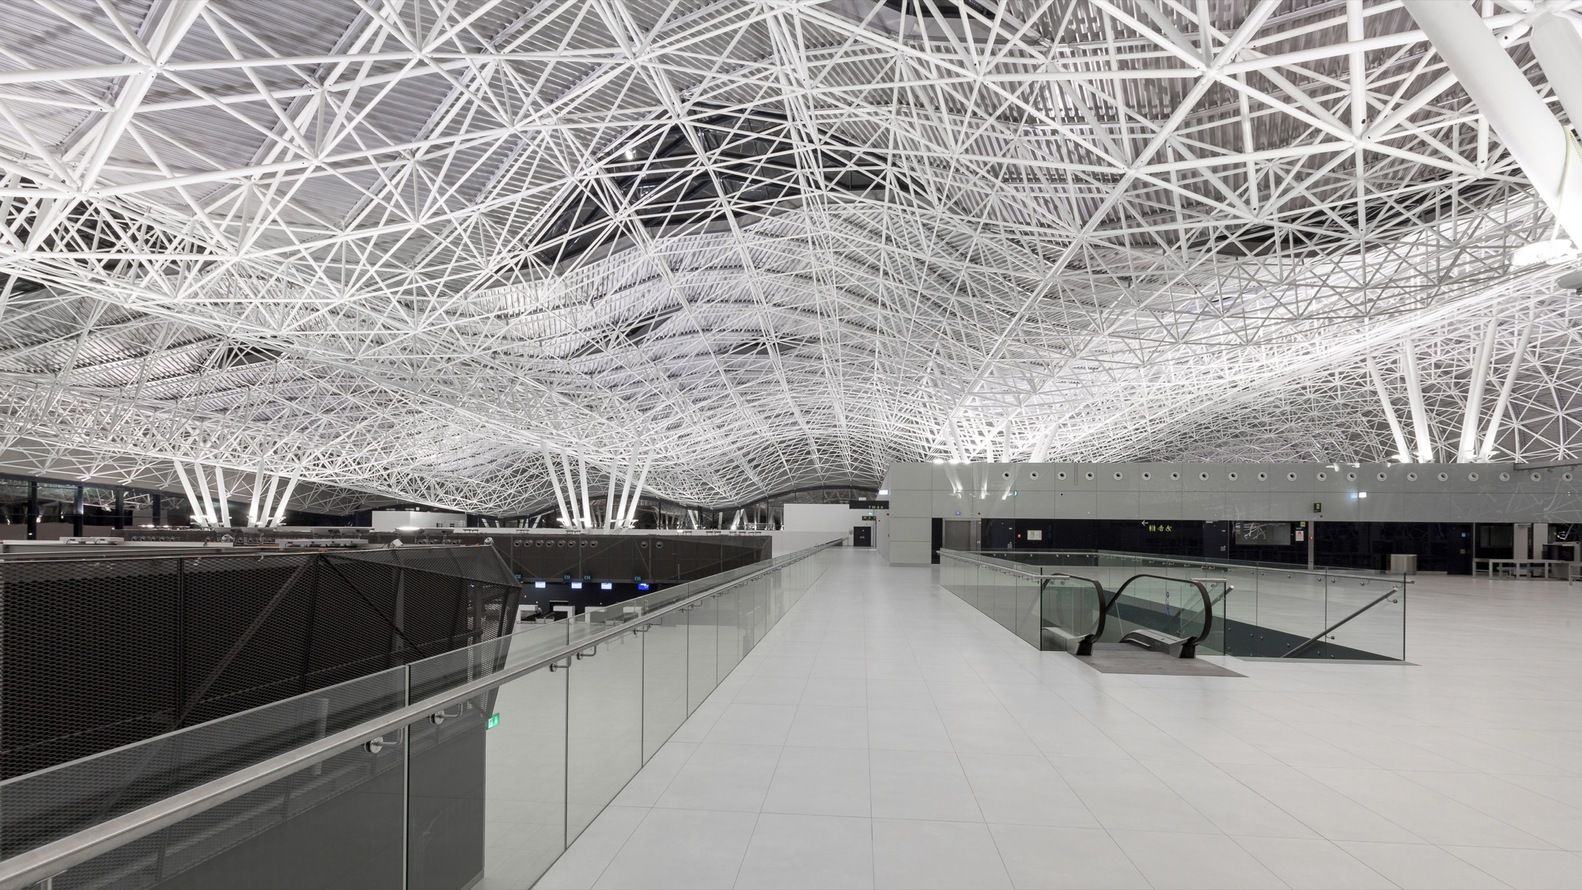 Gallery Of Zagreb Airport Kincl Neidhardt Institut Igh 4 Architecture American Architecture Zagreb